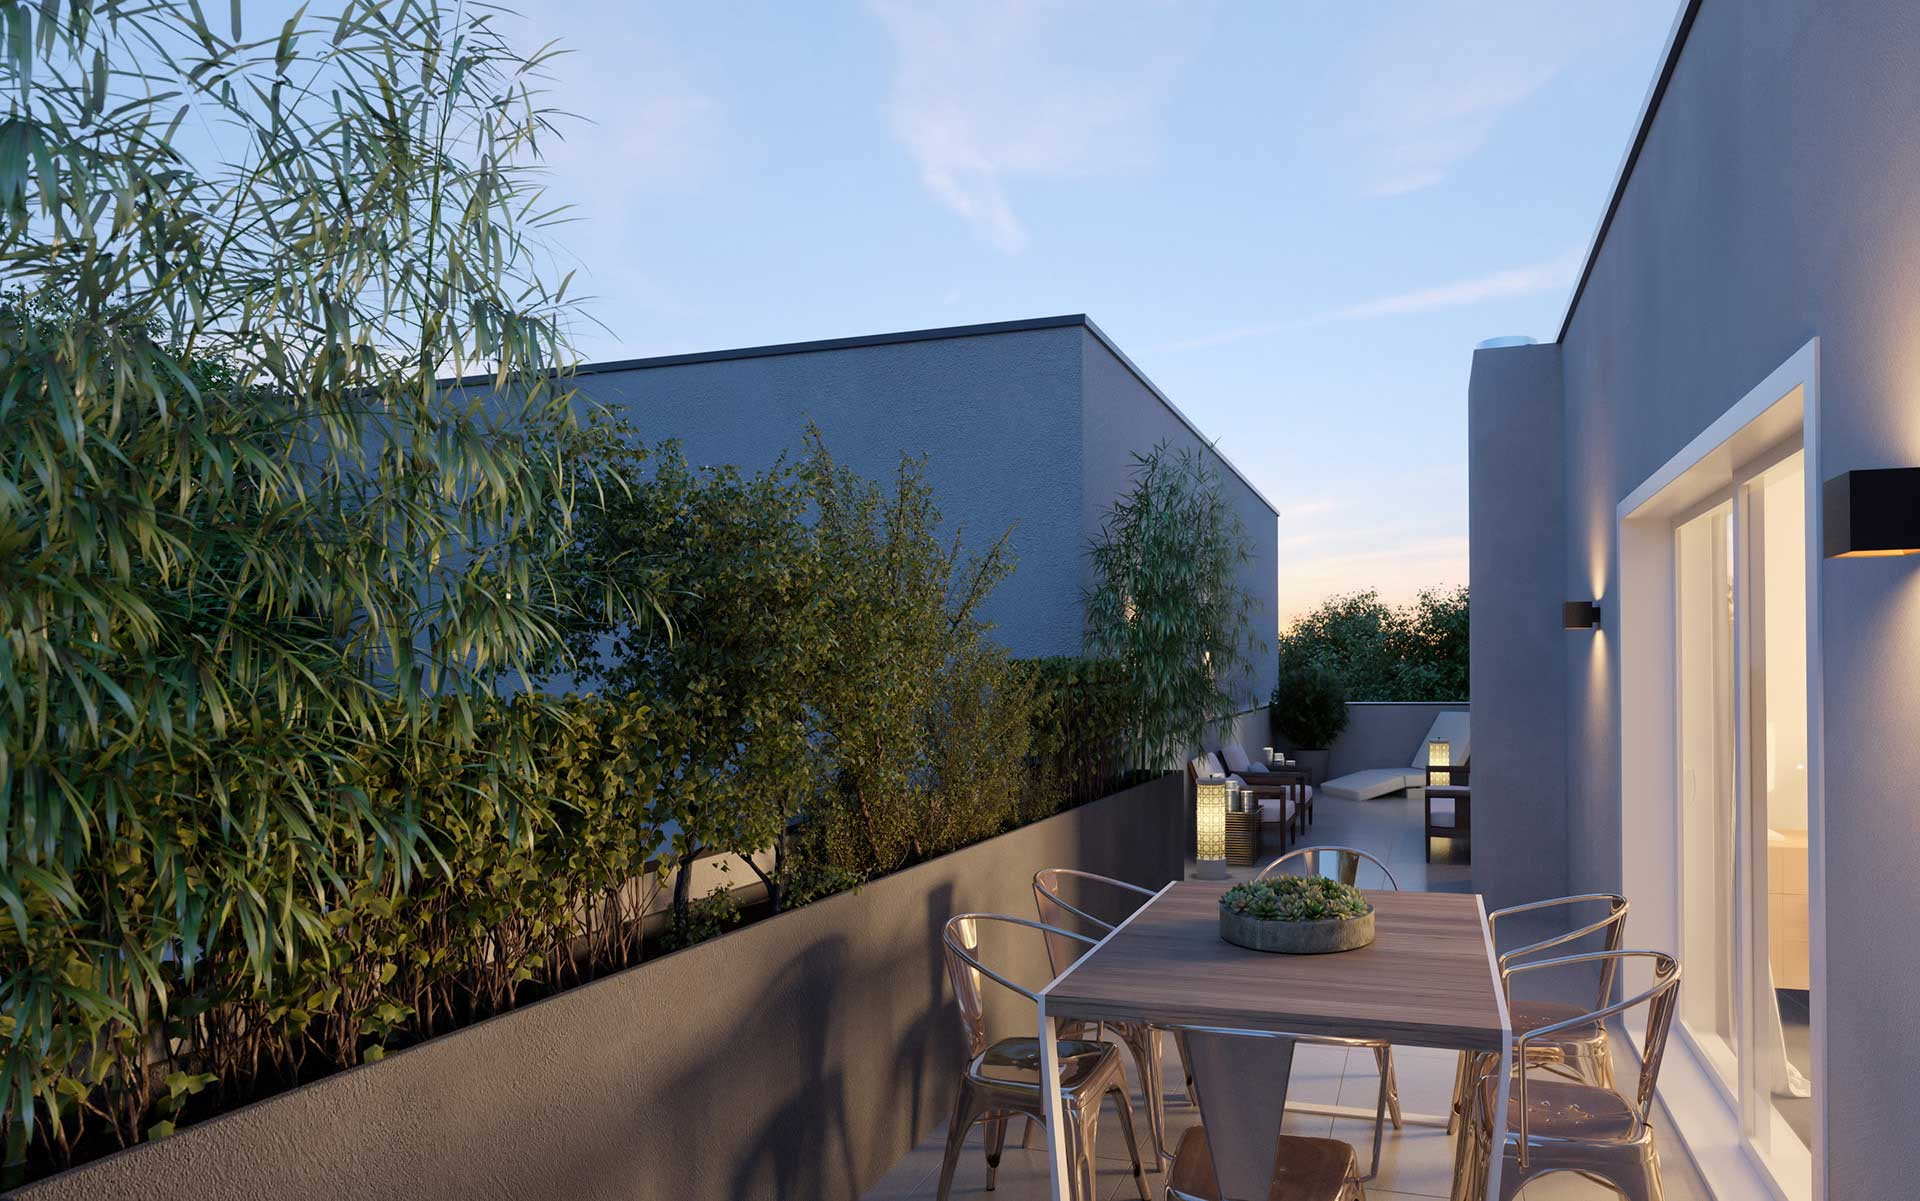 3 dimensional terrace - 3D rendering real estate project.